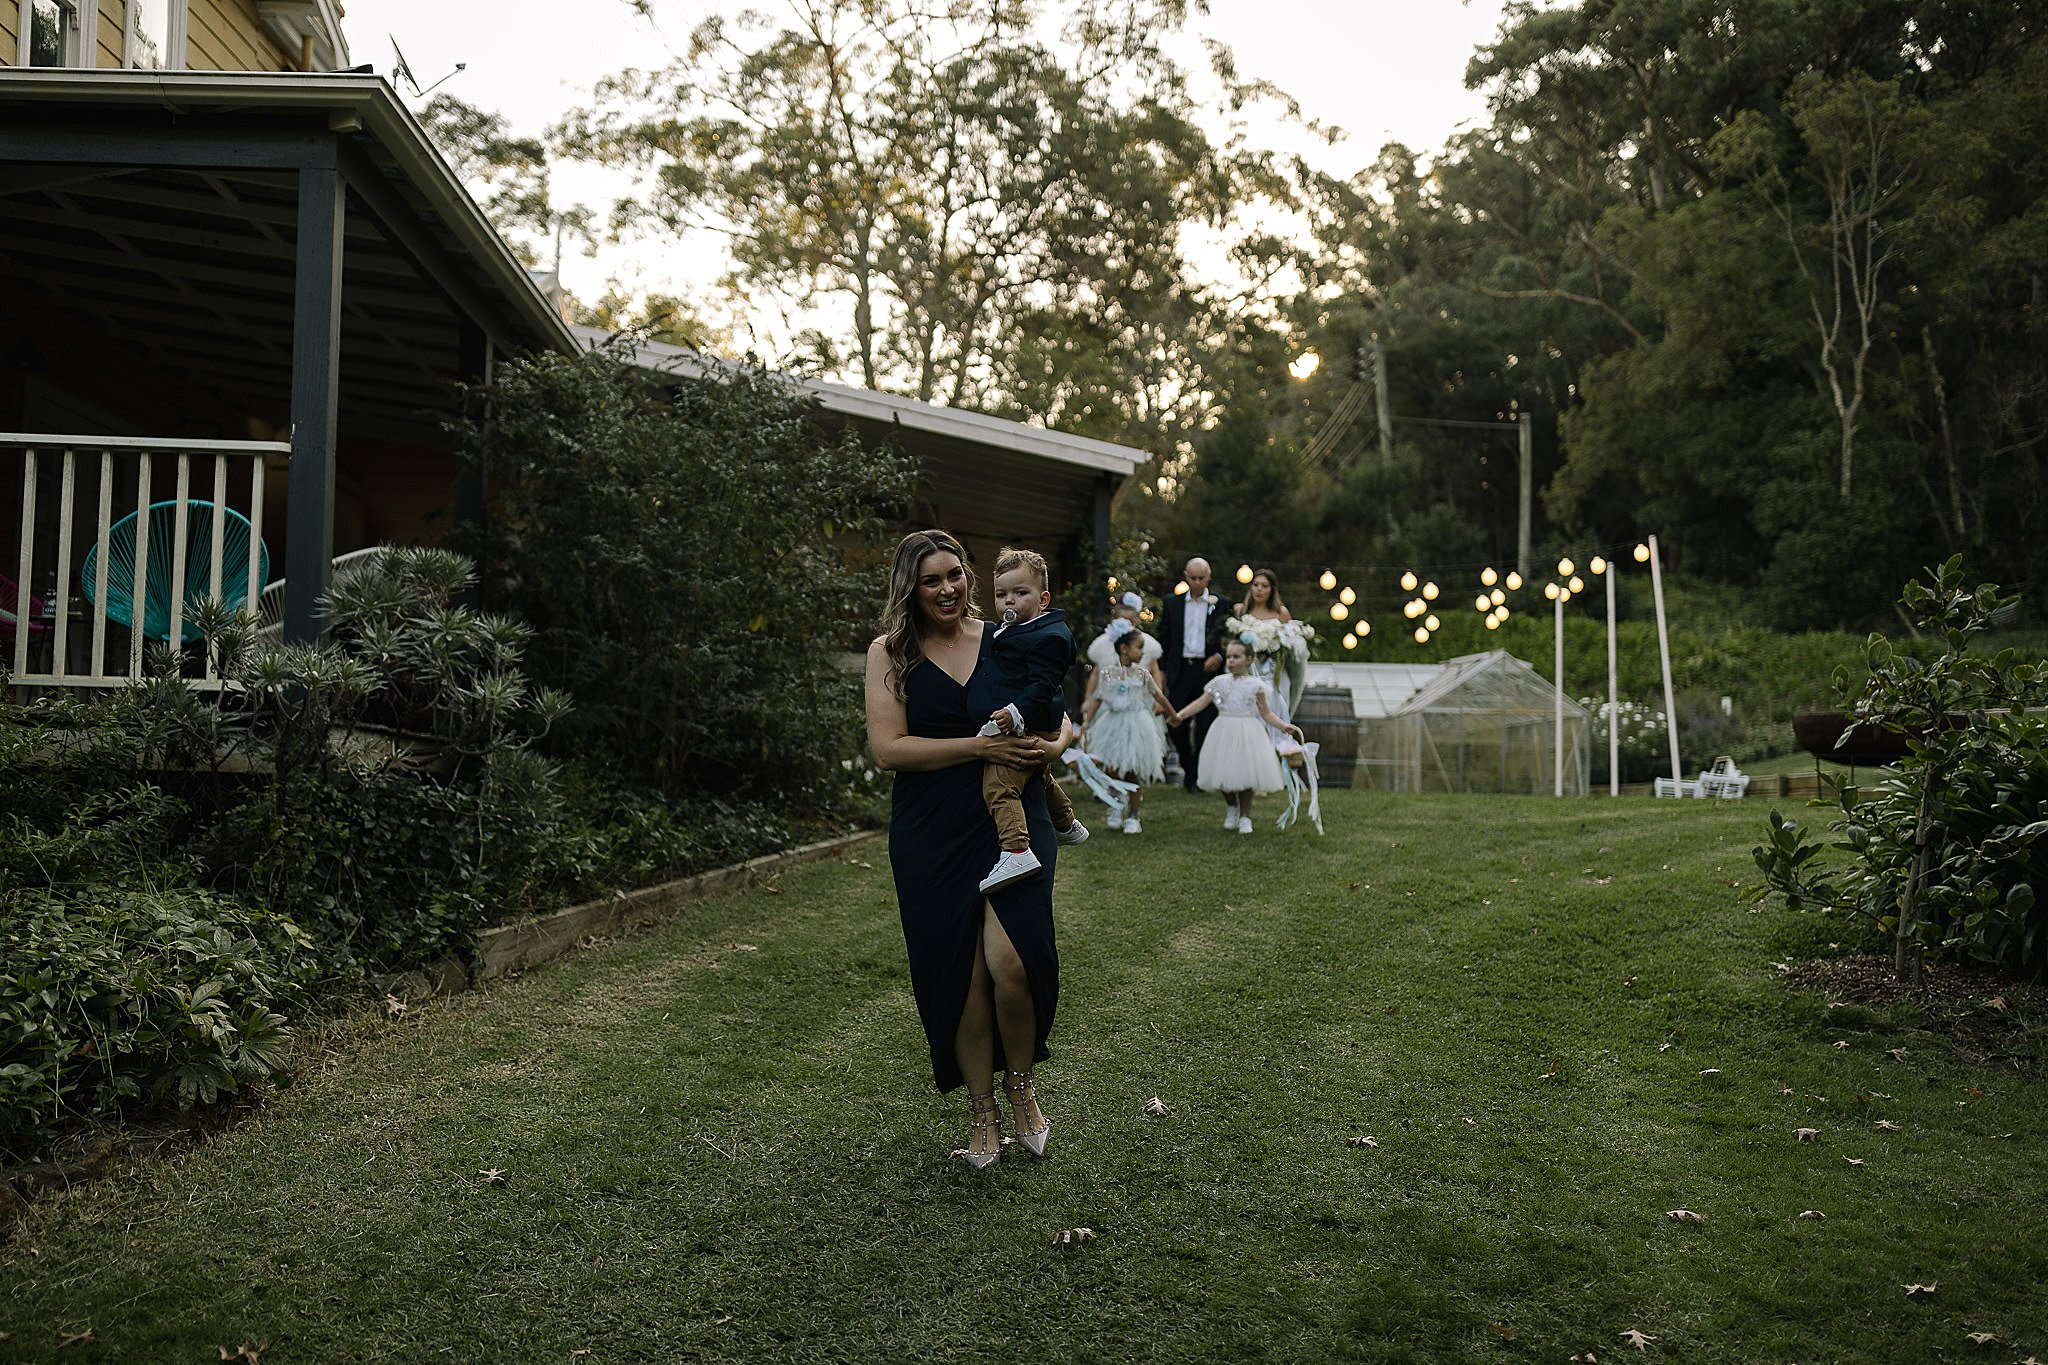 Keepsakephoto by the Keeffes,ACT wedding photographer,ACT weddings,Bowral Wedding Photographer,Canberra Wedding Photographer,Canberra Wedding Photography,canberra weddings,Southern Highlands Wedding,Southern Highlands,Moxom & Whitney,Canberra Photography,country wedding,